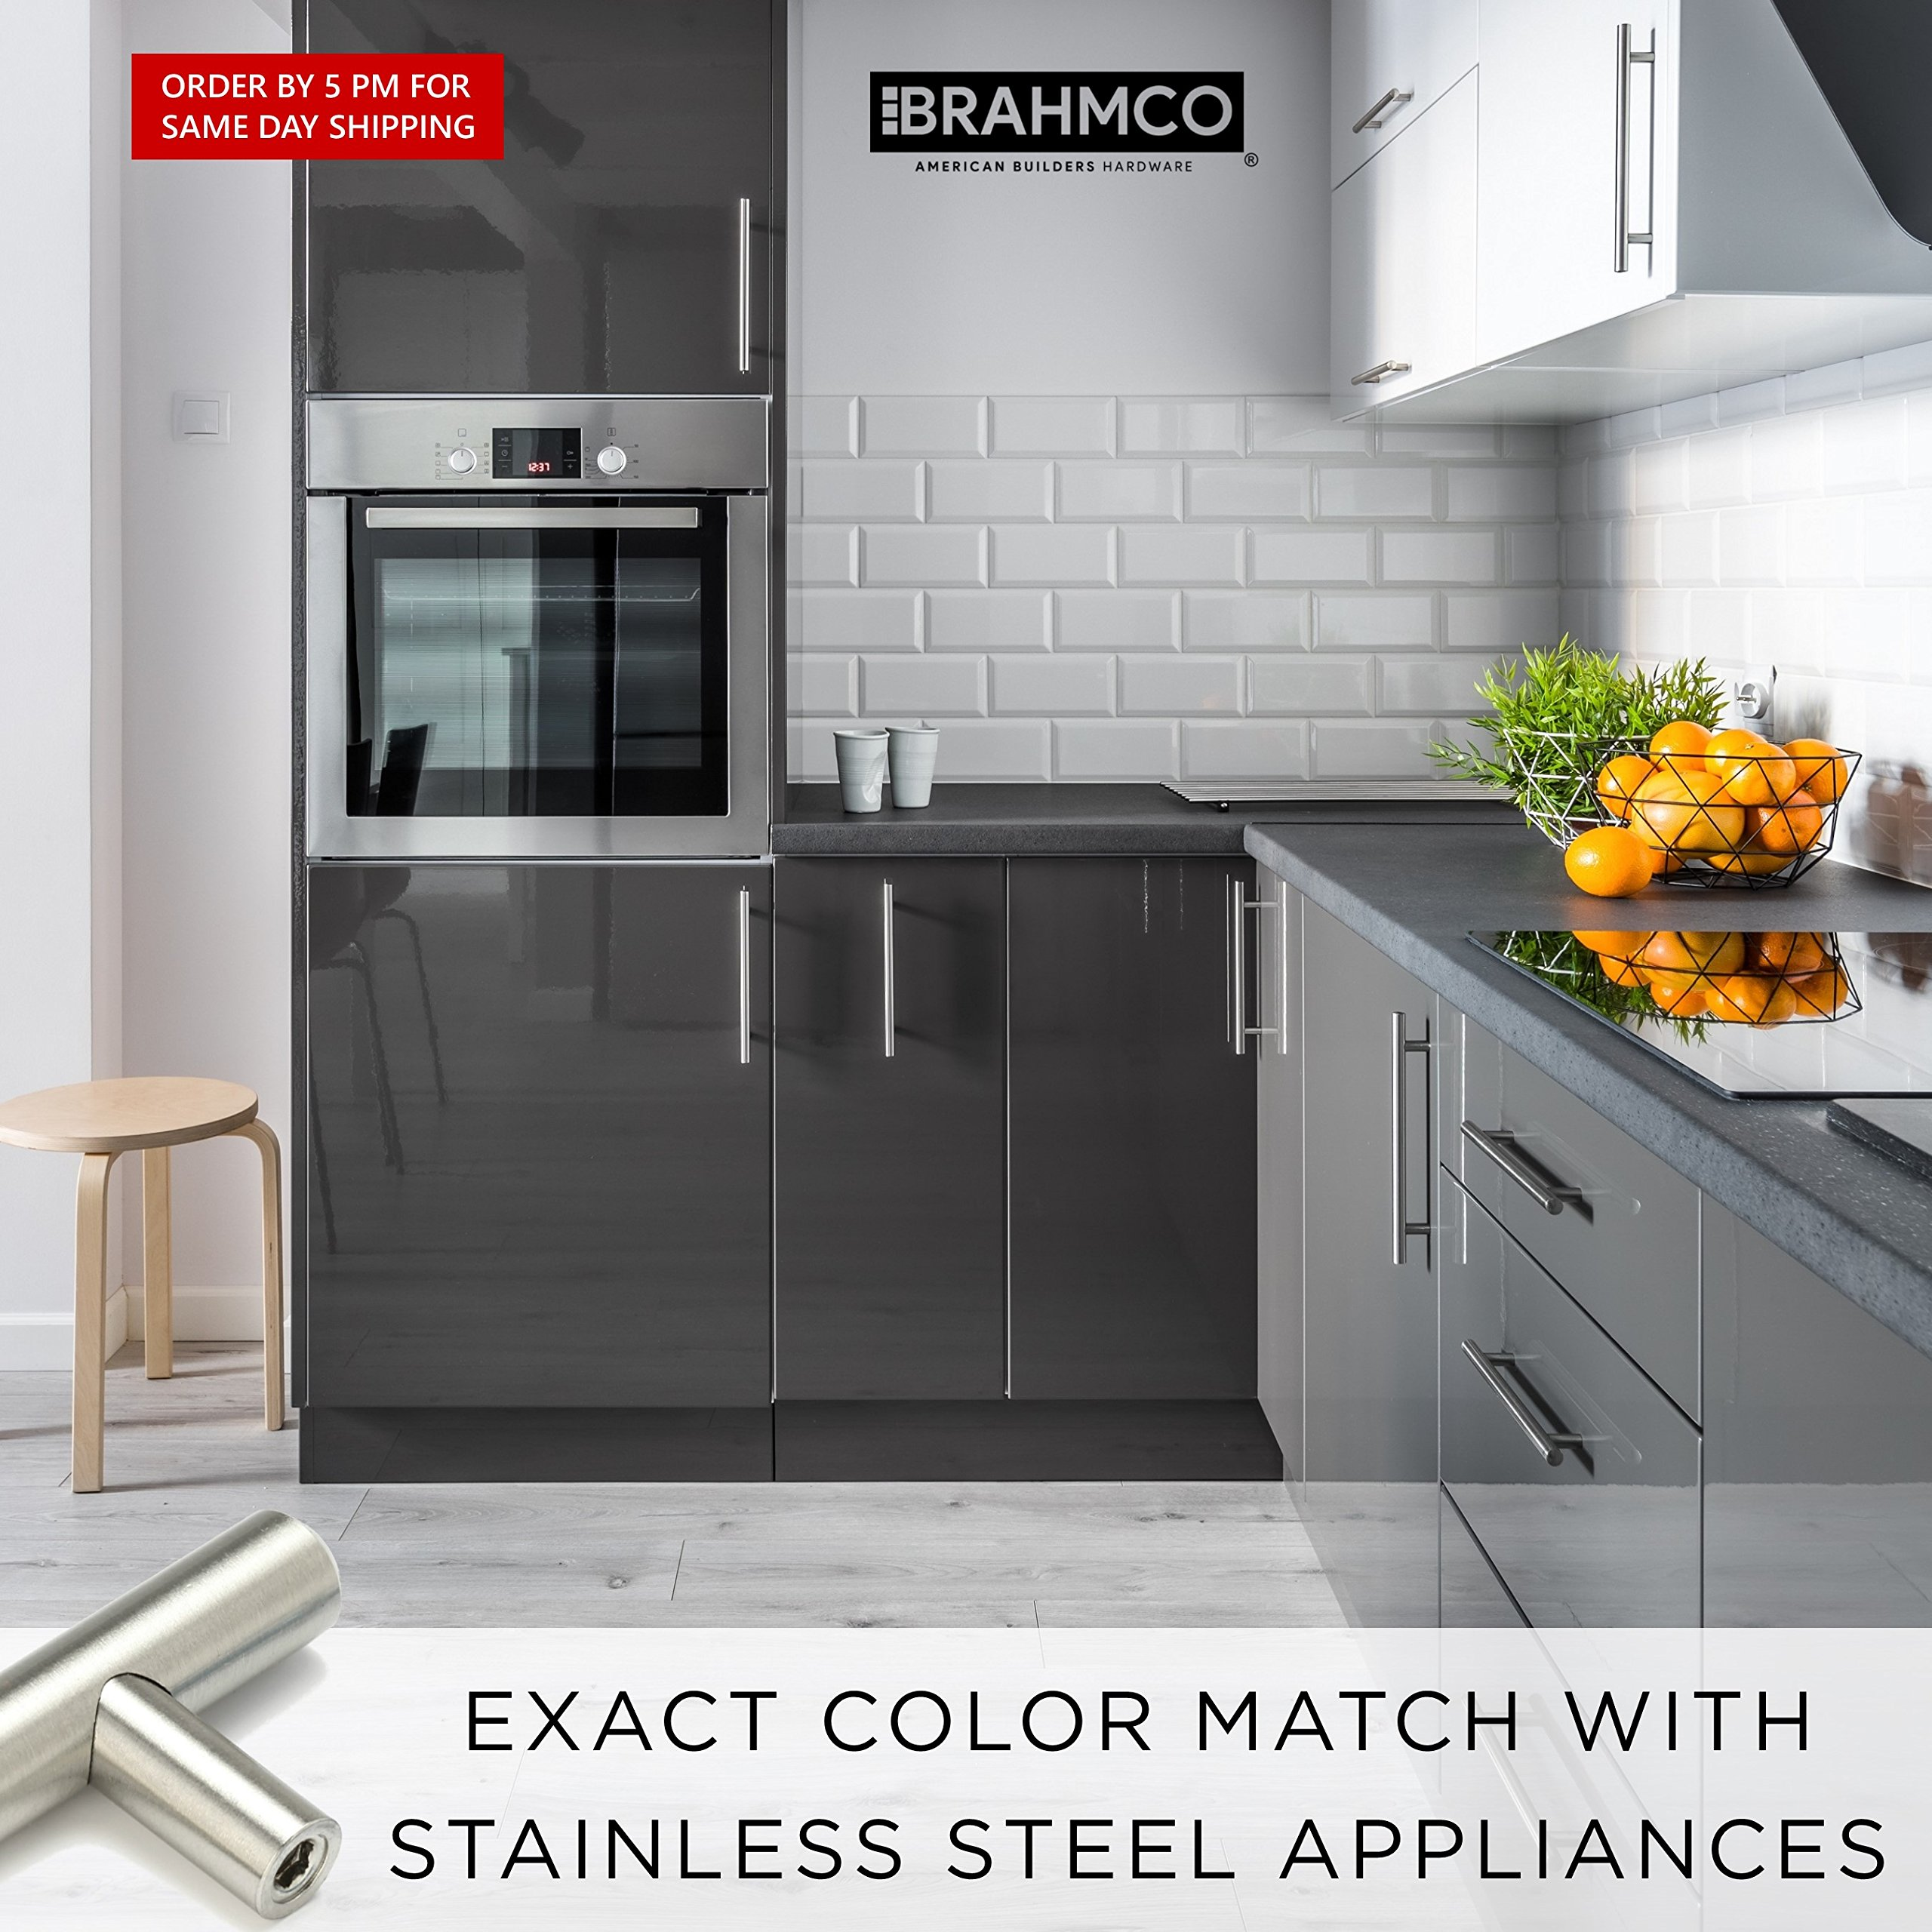 30 Pack | 5'' Stainless Steel T Bar Cabinet Pulls: 3 Inch Hole Spacing | Brahmco 180-5 | Modern Euro Style Brushed Satin Nickel Finish Kitchen Cabinet Handles Hardware/Drawer by Brahmco (Image #6)